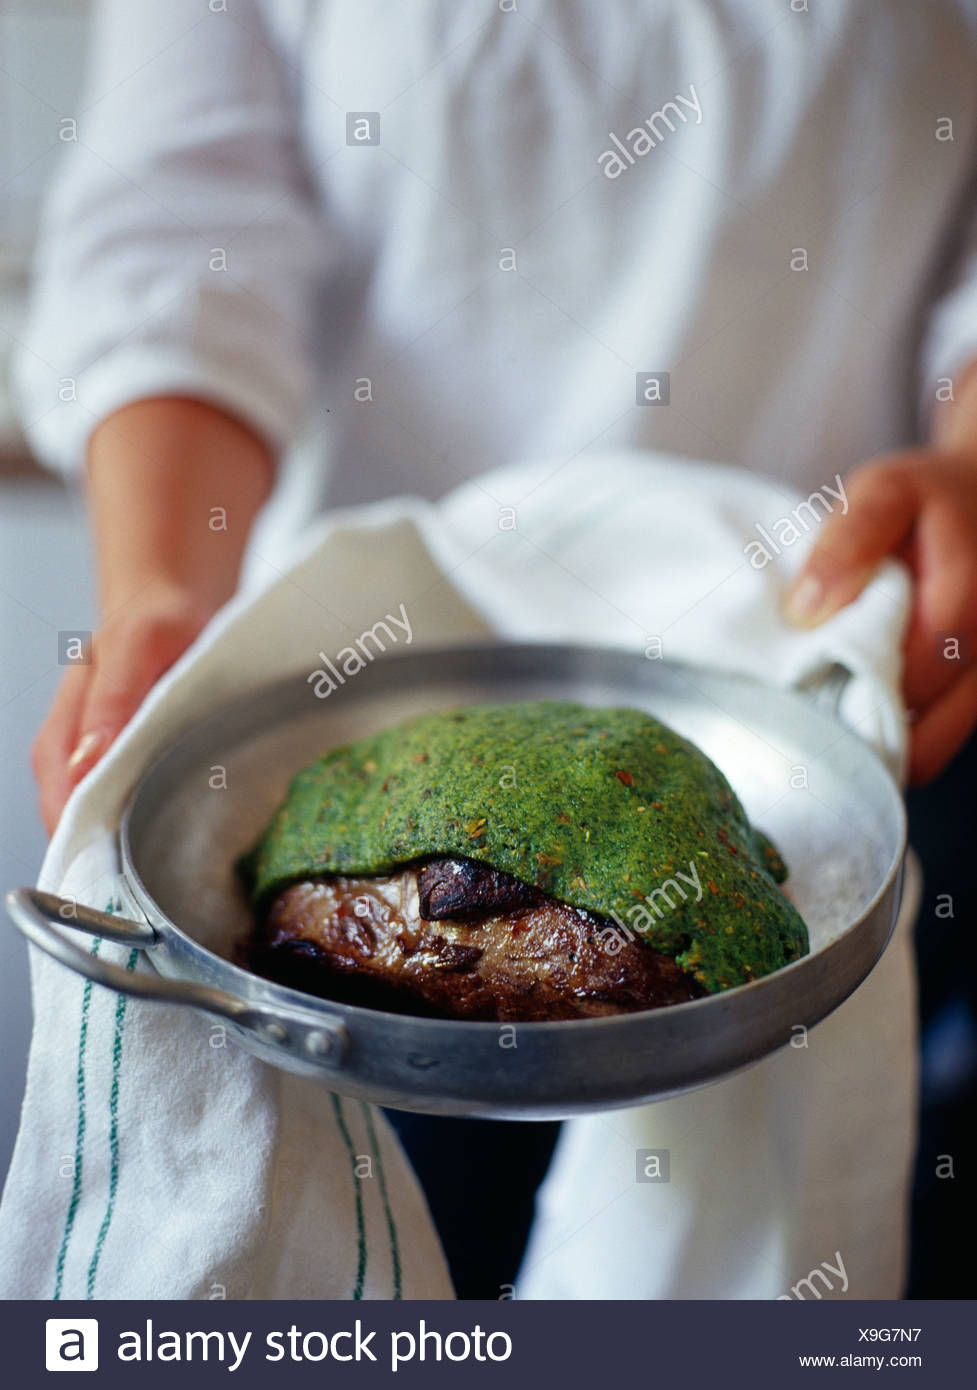 Leg of lamb cooked in a herb crust - Stock Image